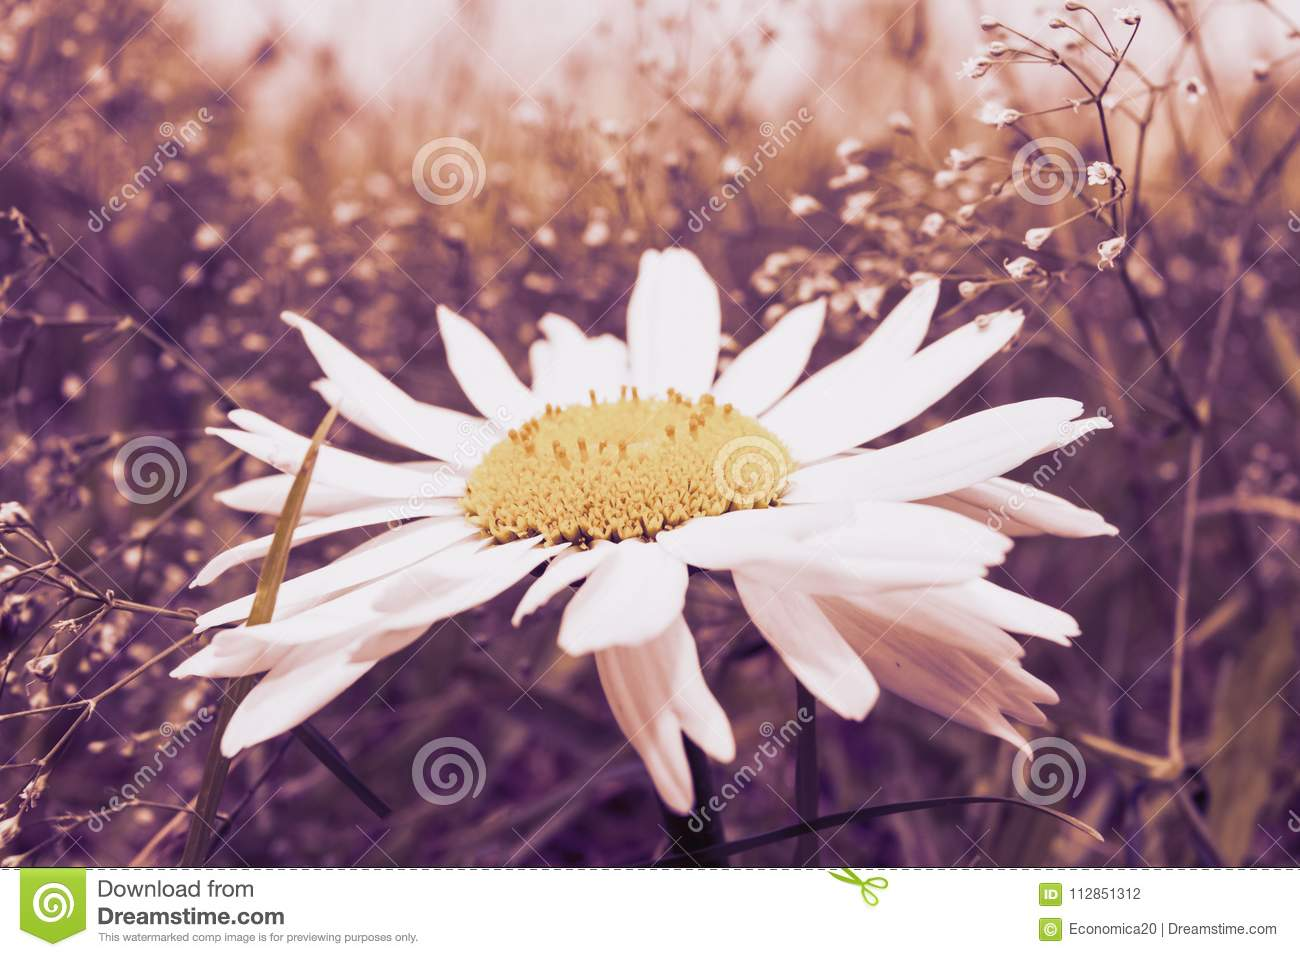 Big Flower With A Yellow Disk And White Rays Stock Photo Image Of